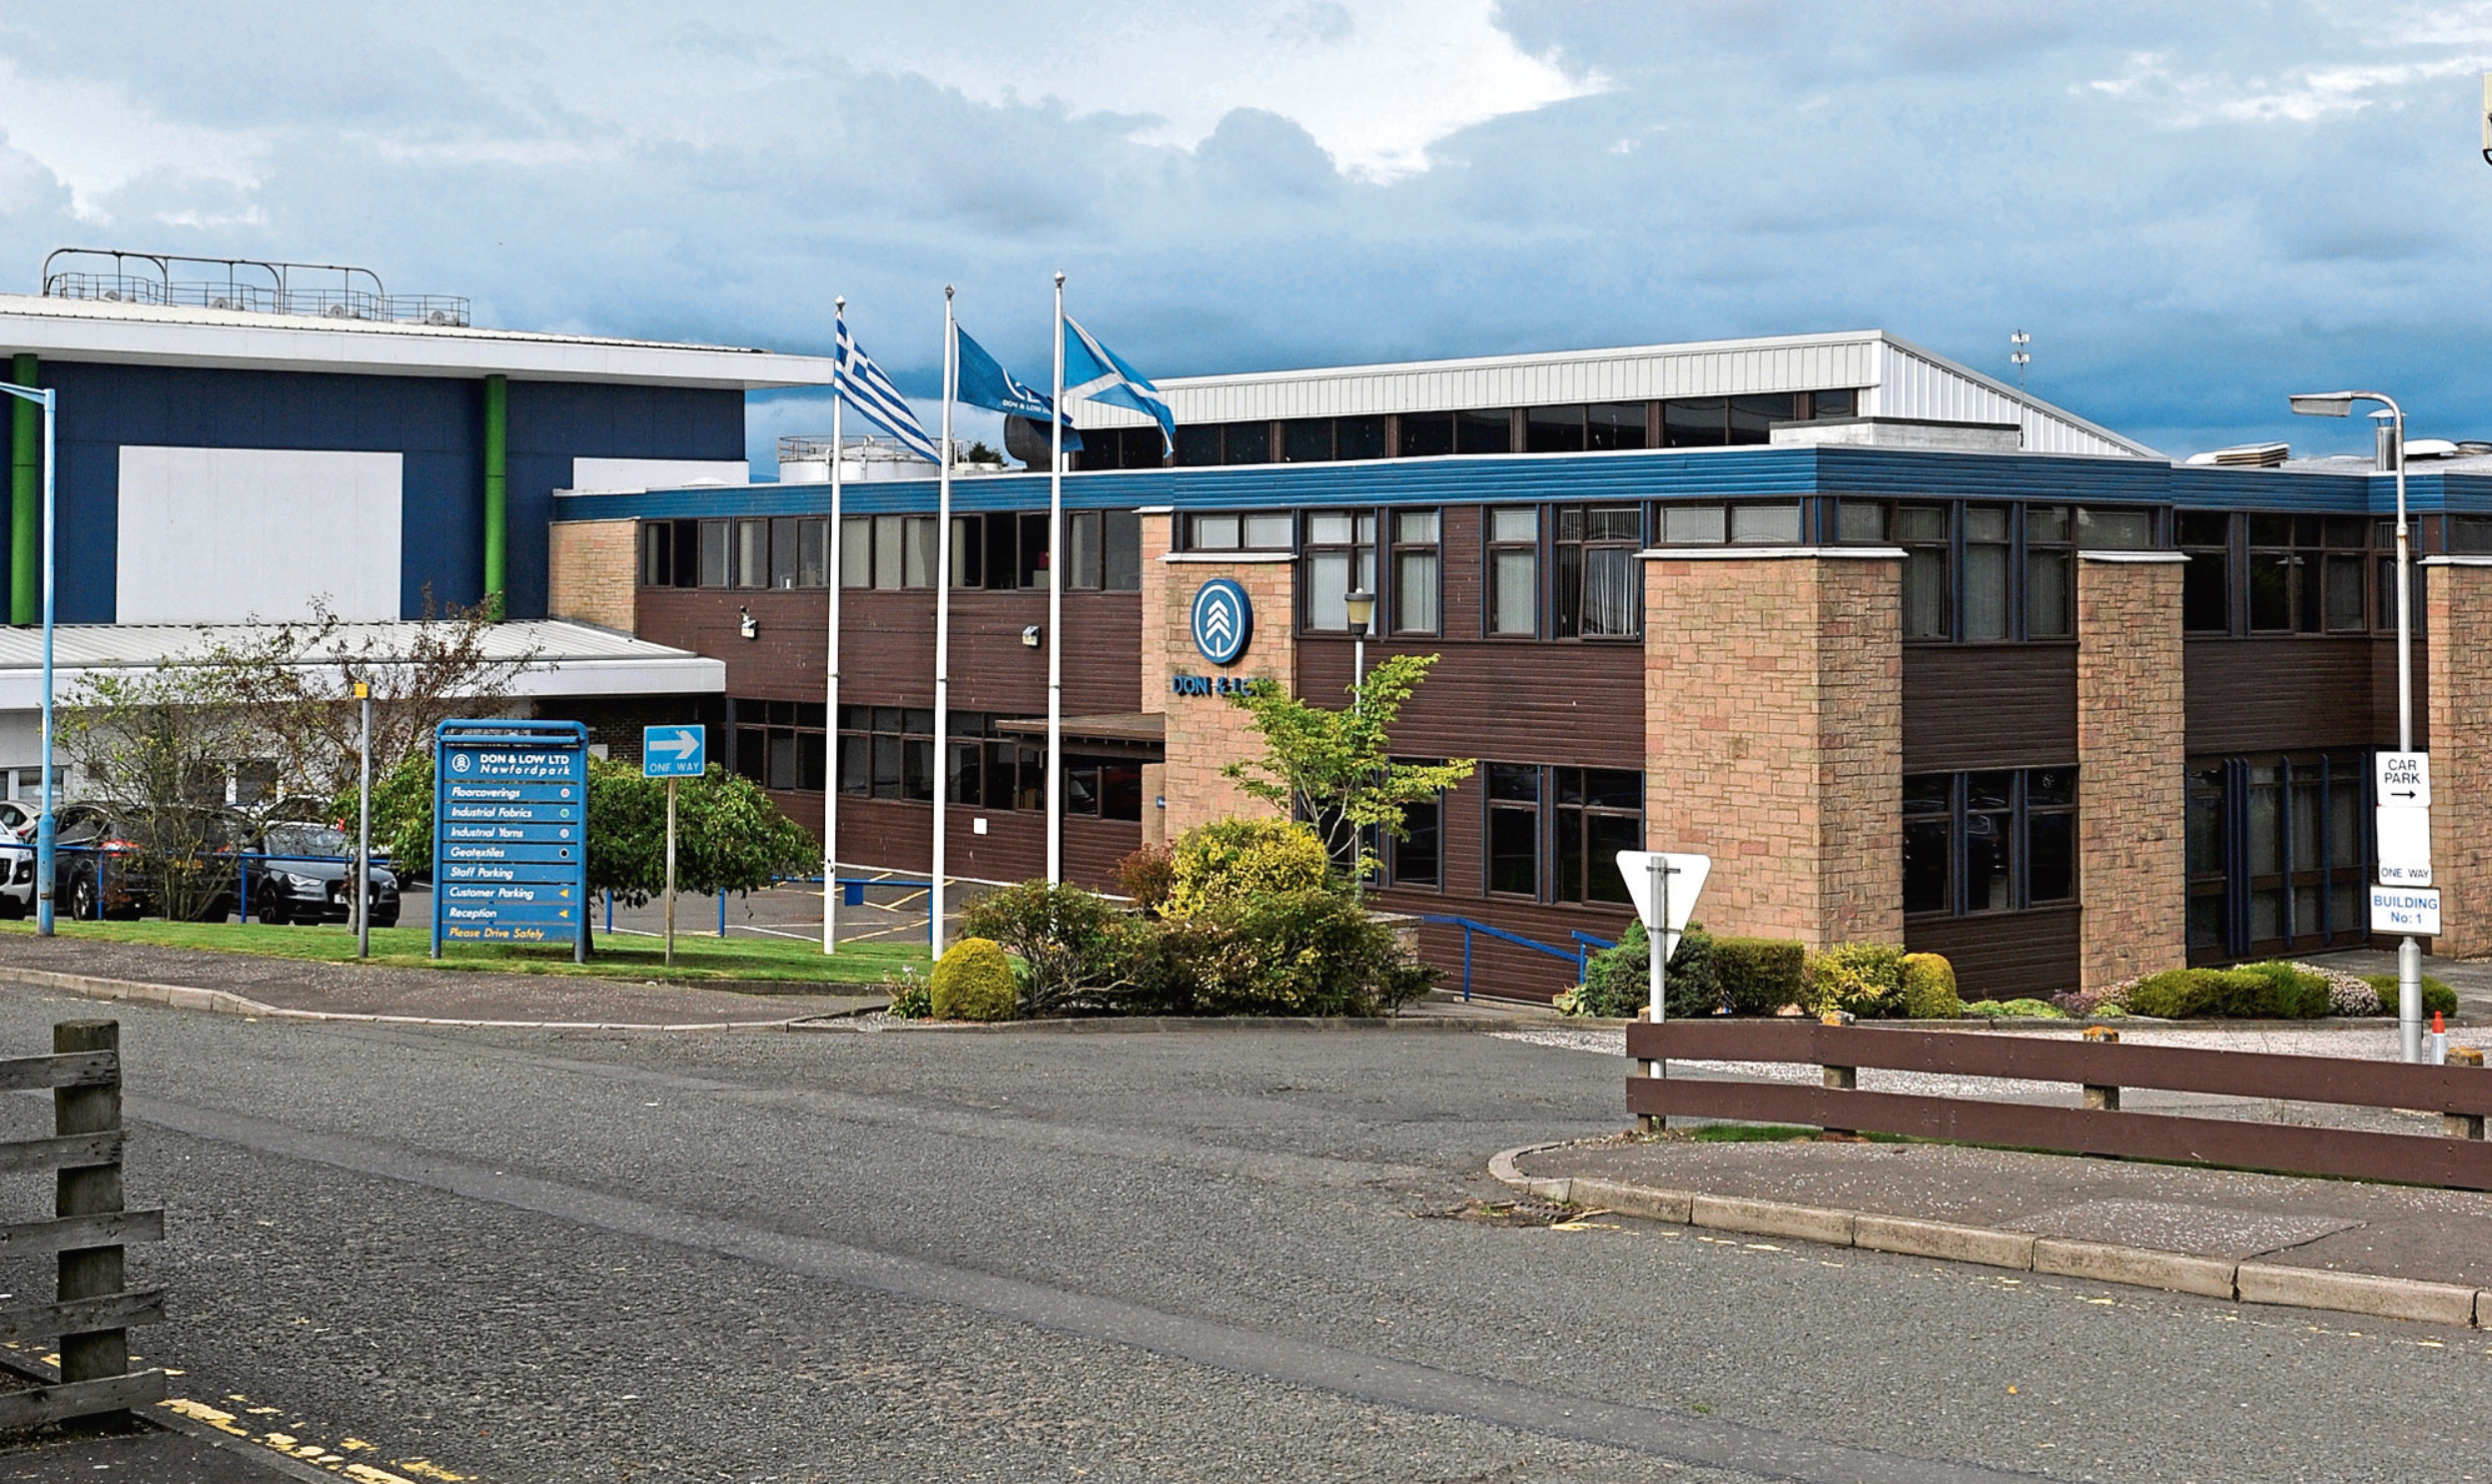 The company base in Glamis Road, Forfar.